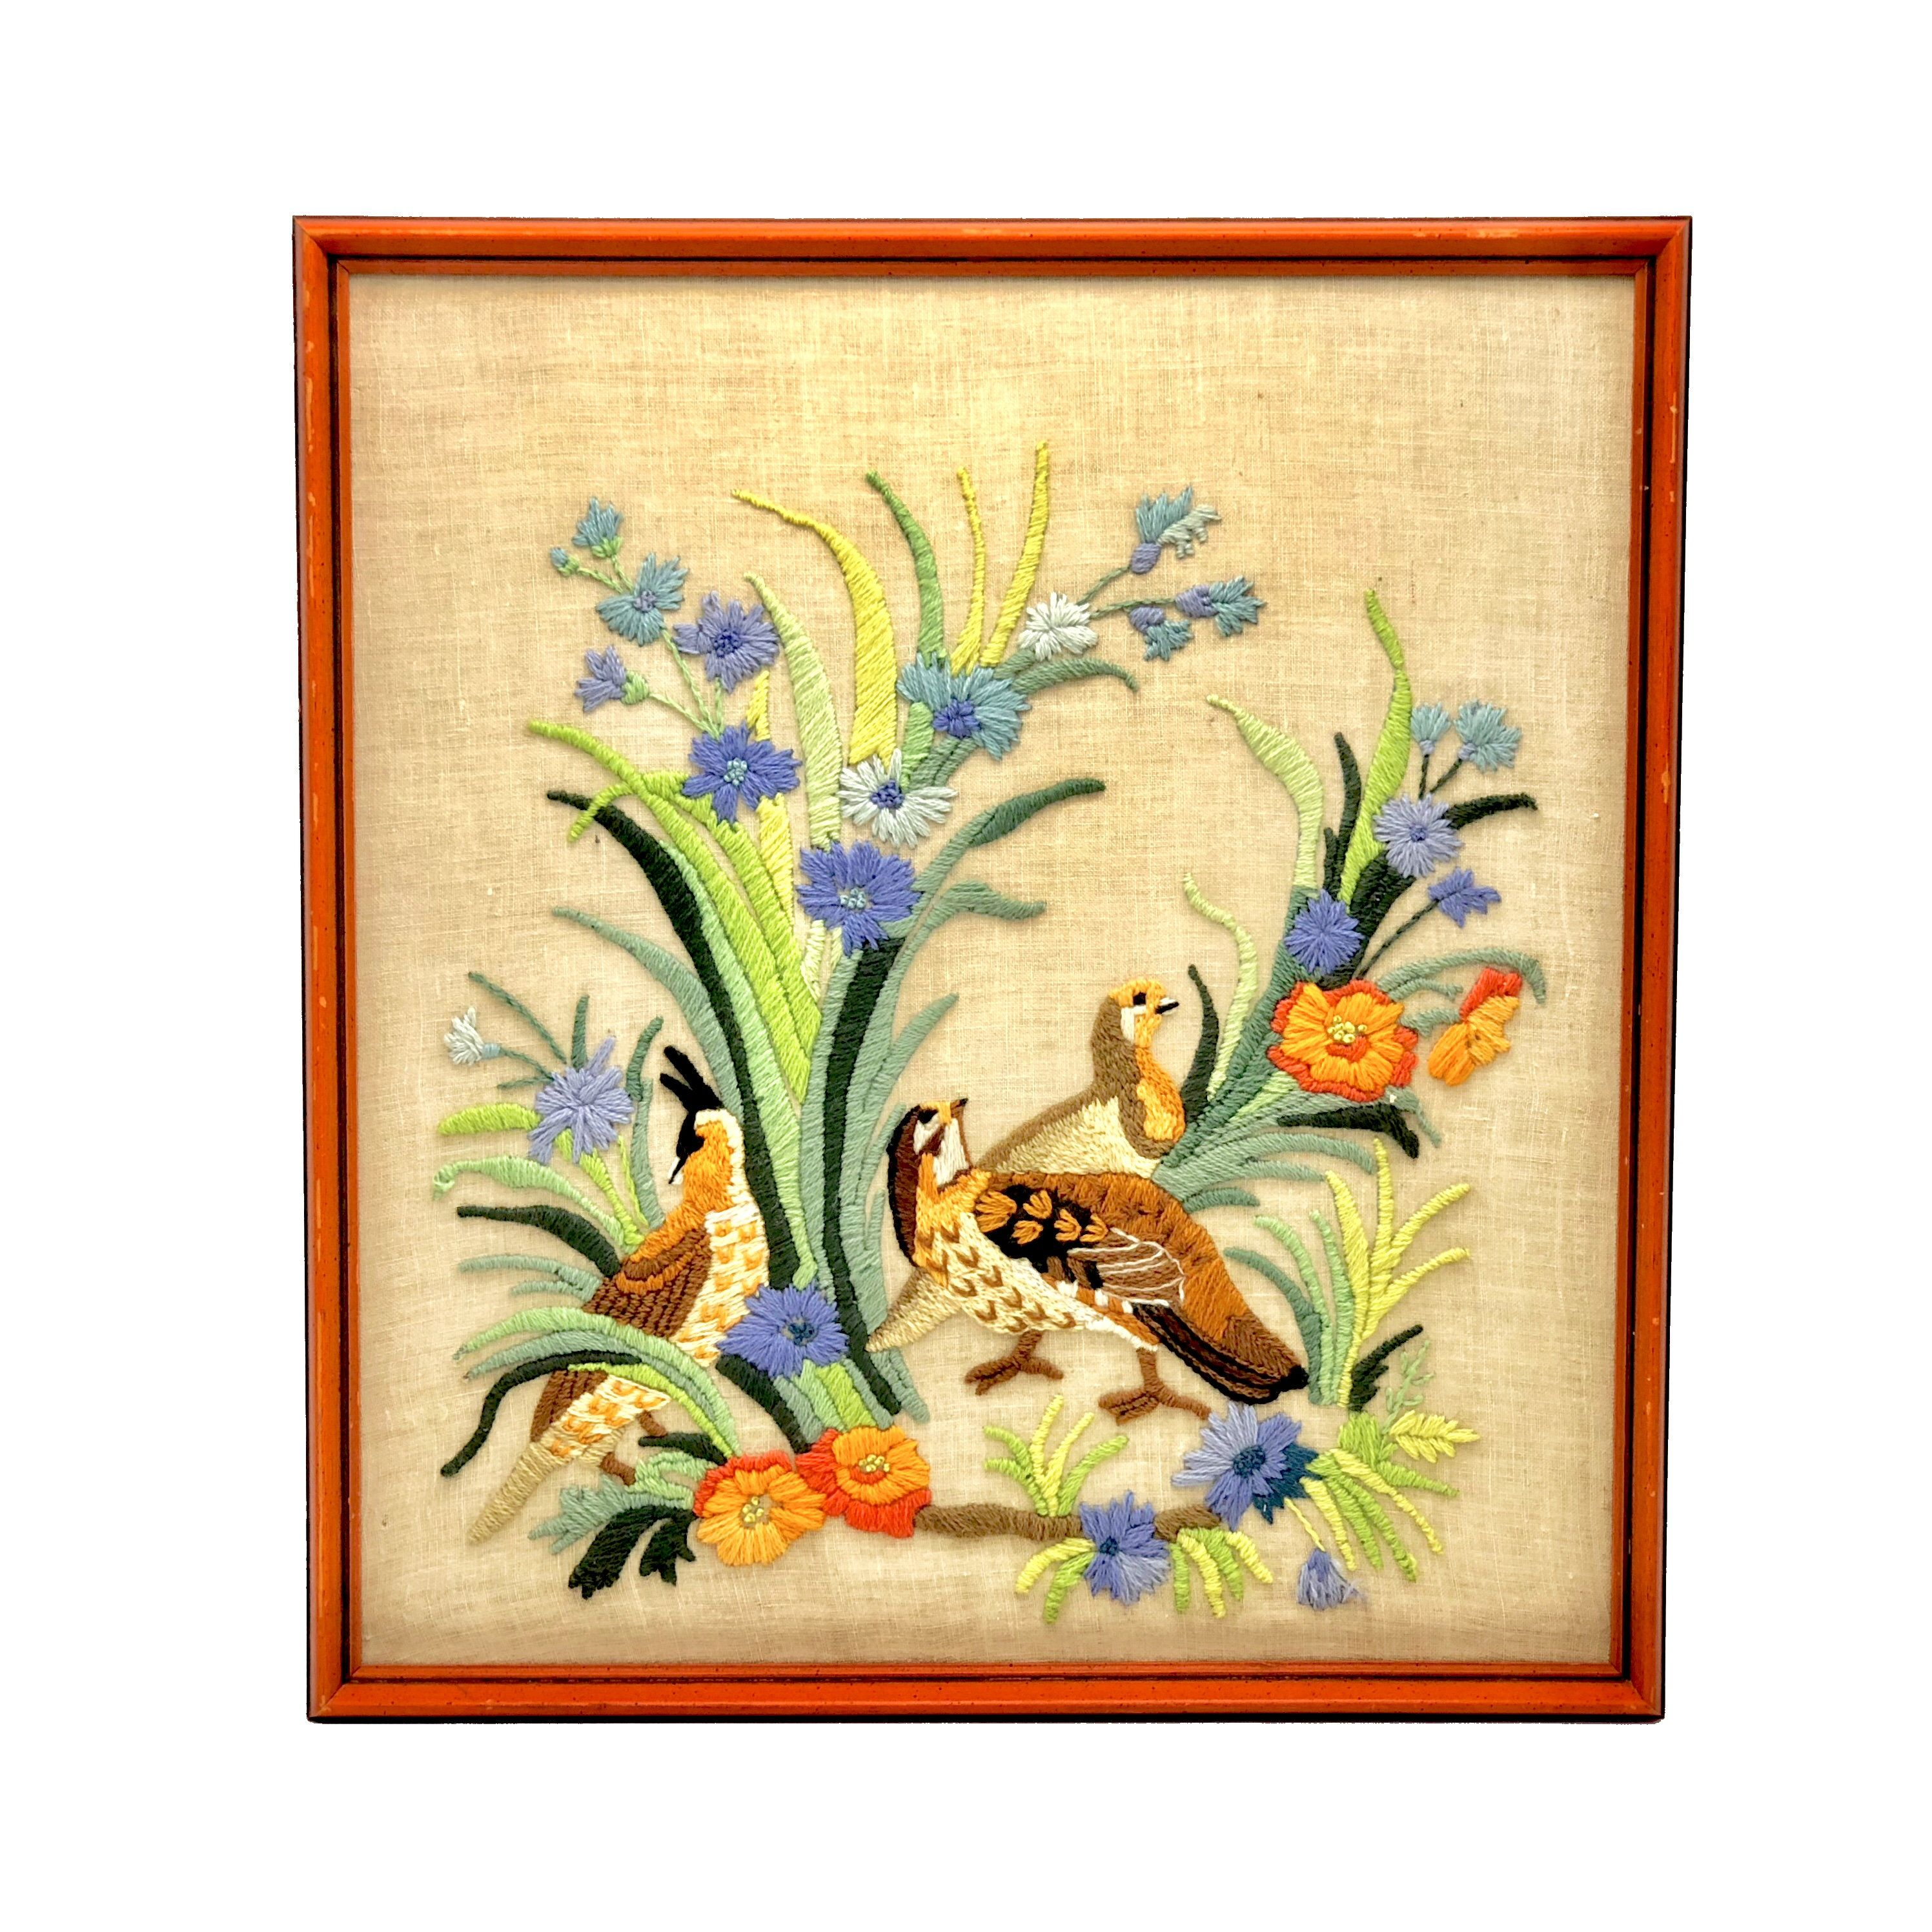 Mid Century Wall Art Vintage Hand Embroidery Art, Embroidery Picture ...